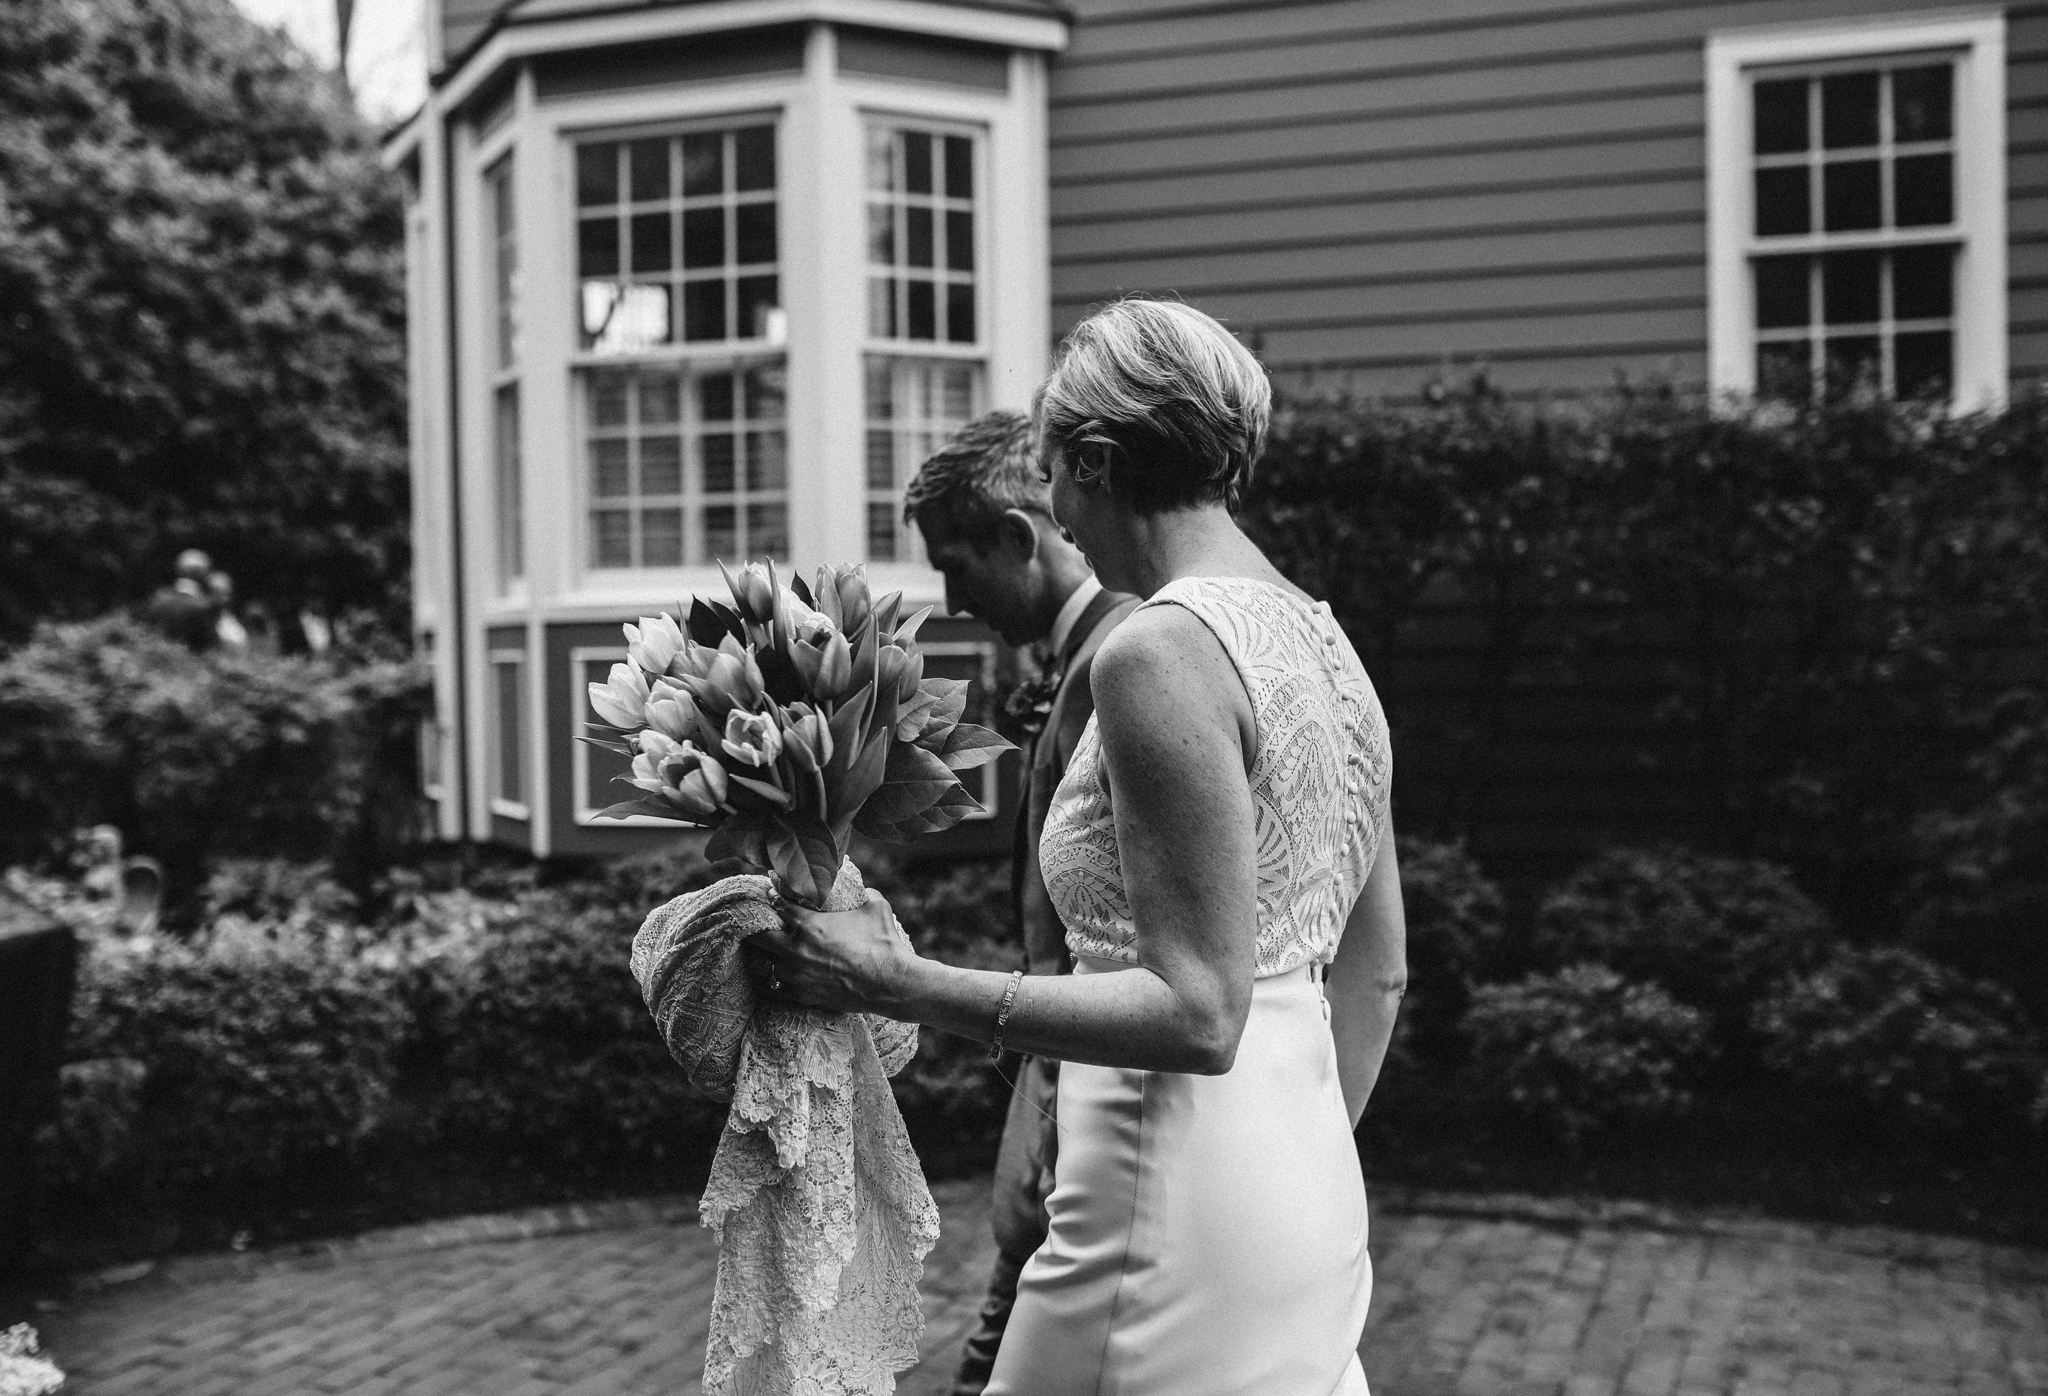 cook_wedding_richmond_virginia_rebecca_burt_photography-63.jpg